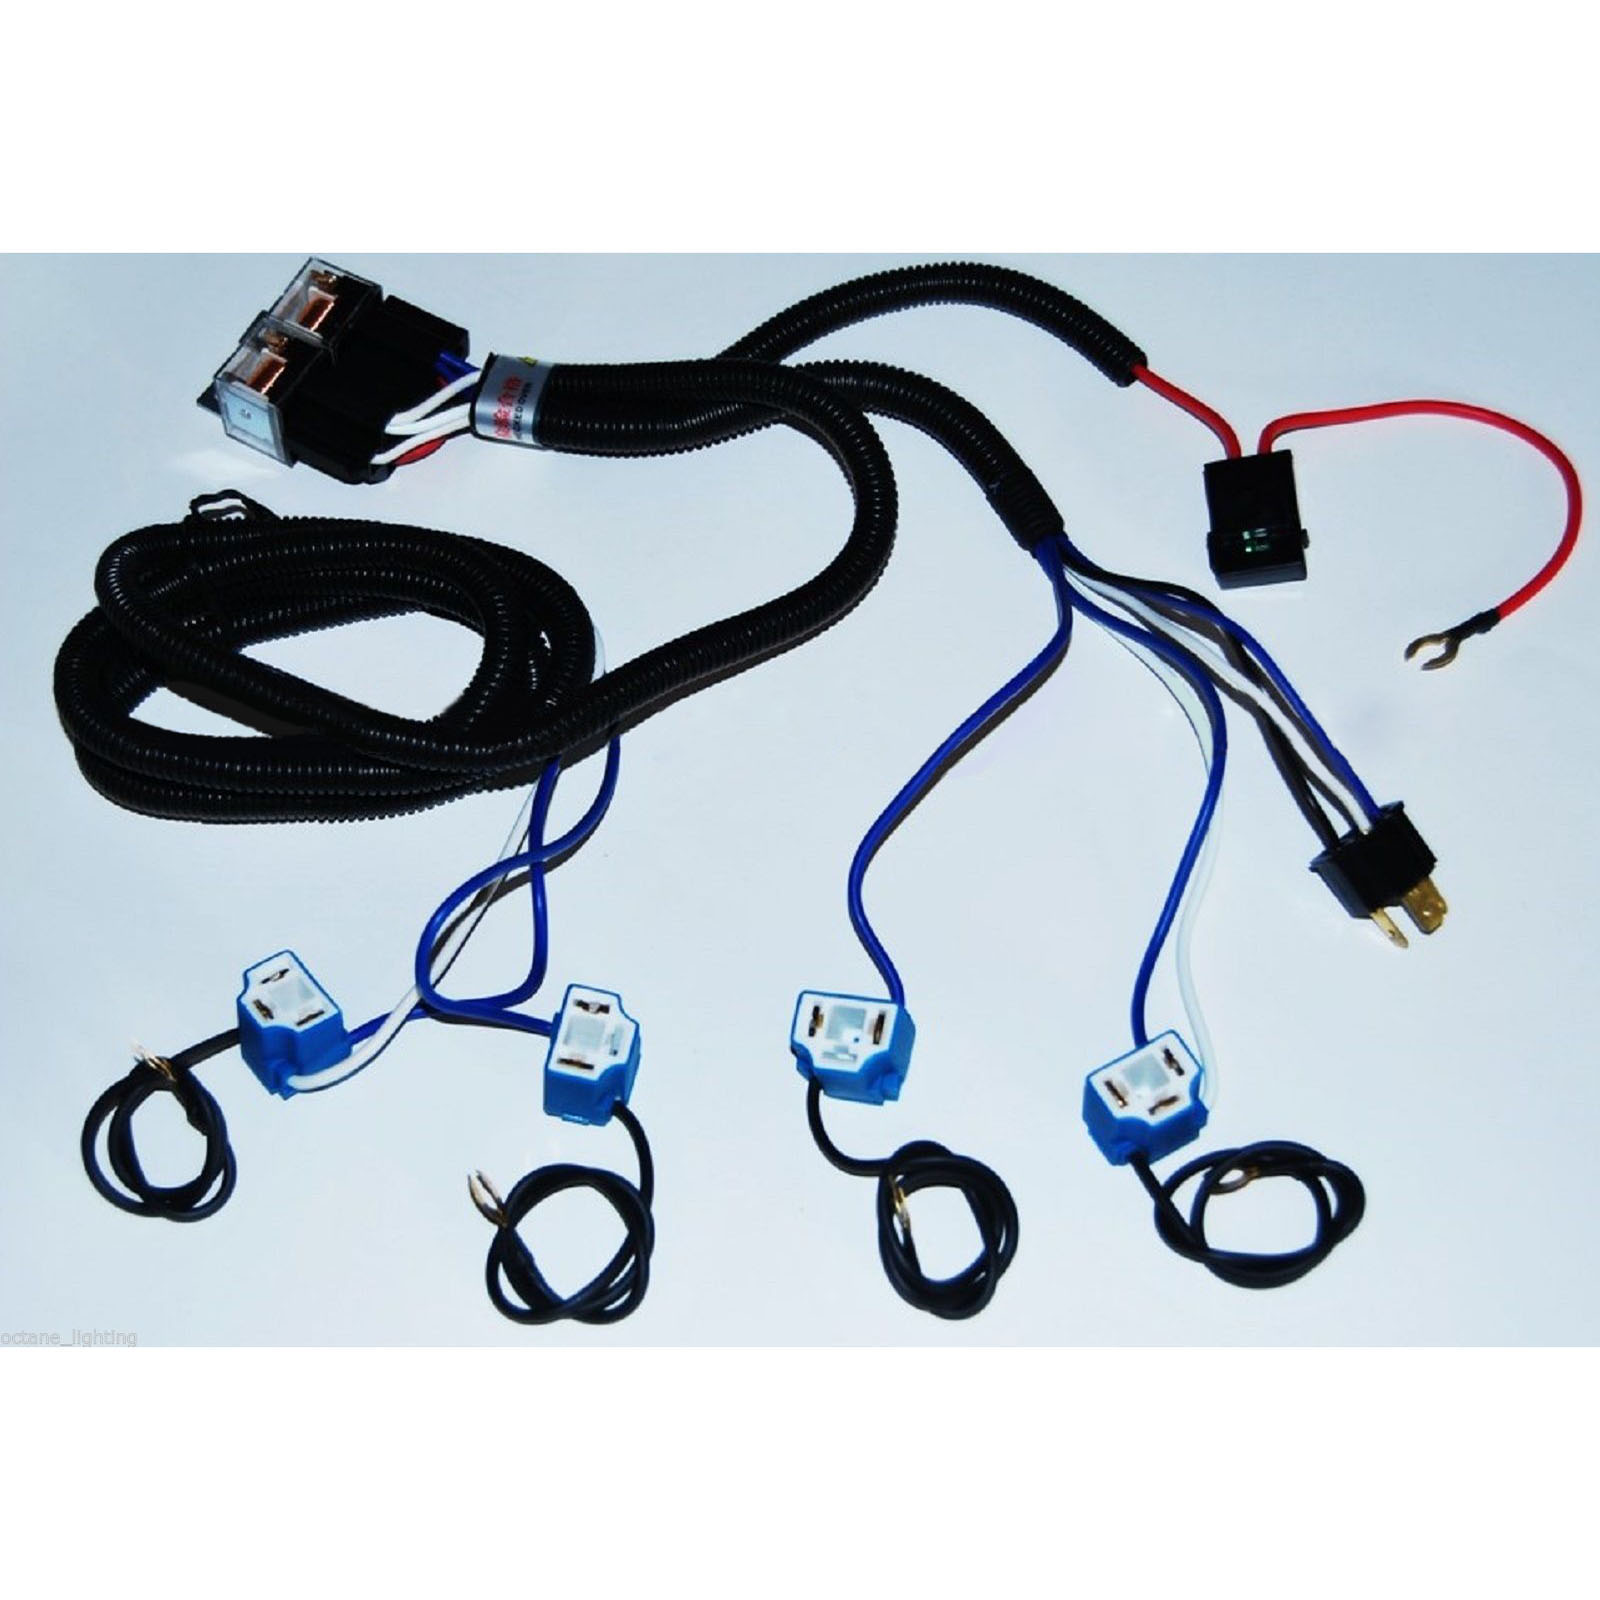 Ceramic H4 Relay Wiring Harness 4 Headlight Headlamp Light Bulb Socket  Plugs 4X6